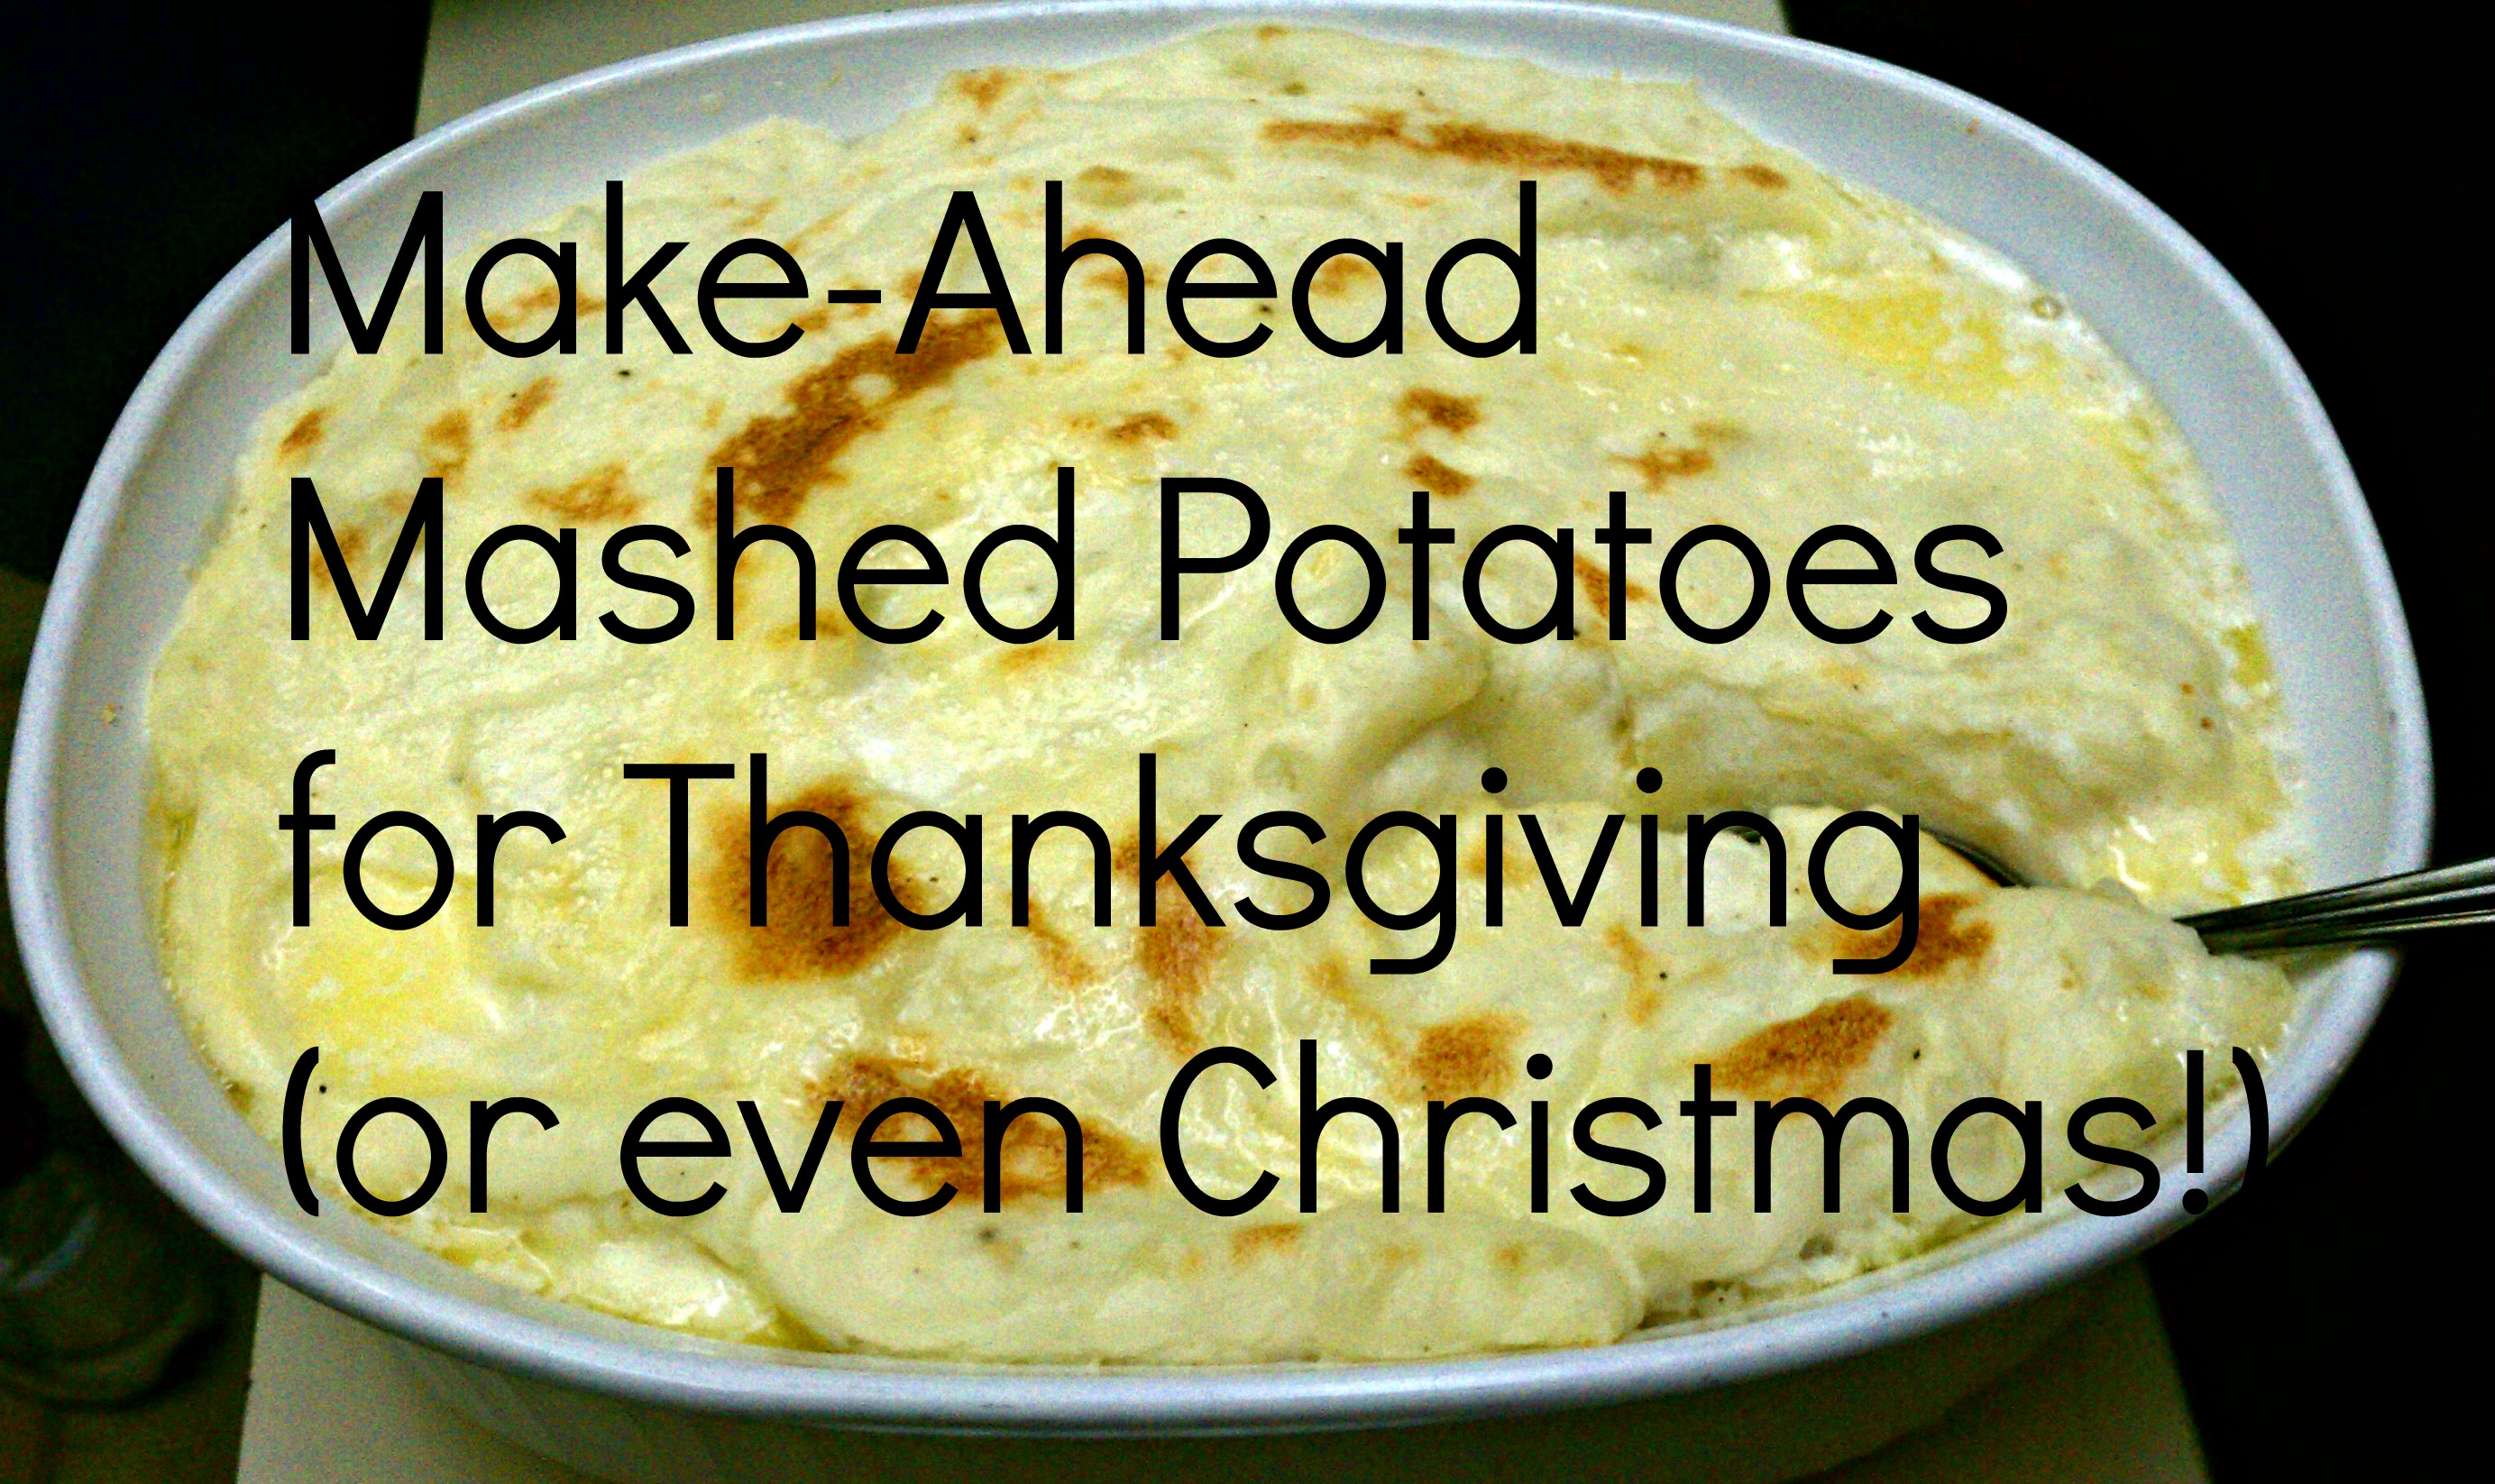 How to prepare mashed potatoes ahead